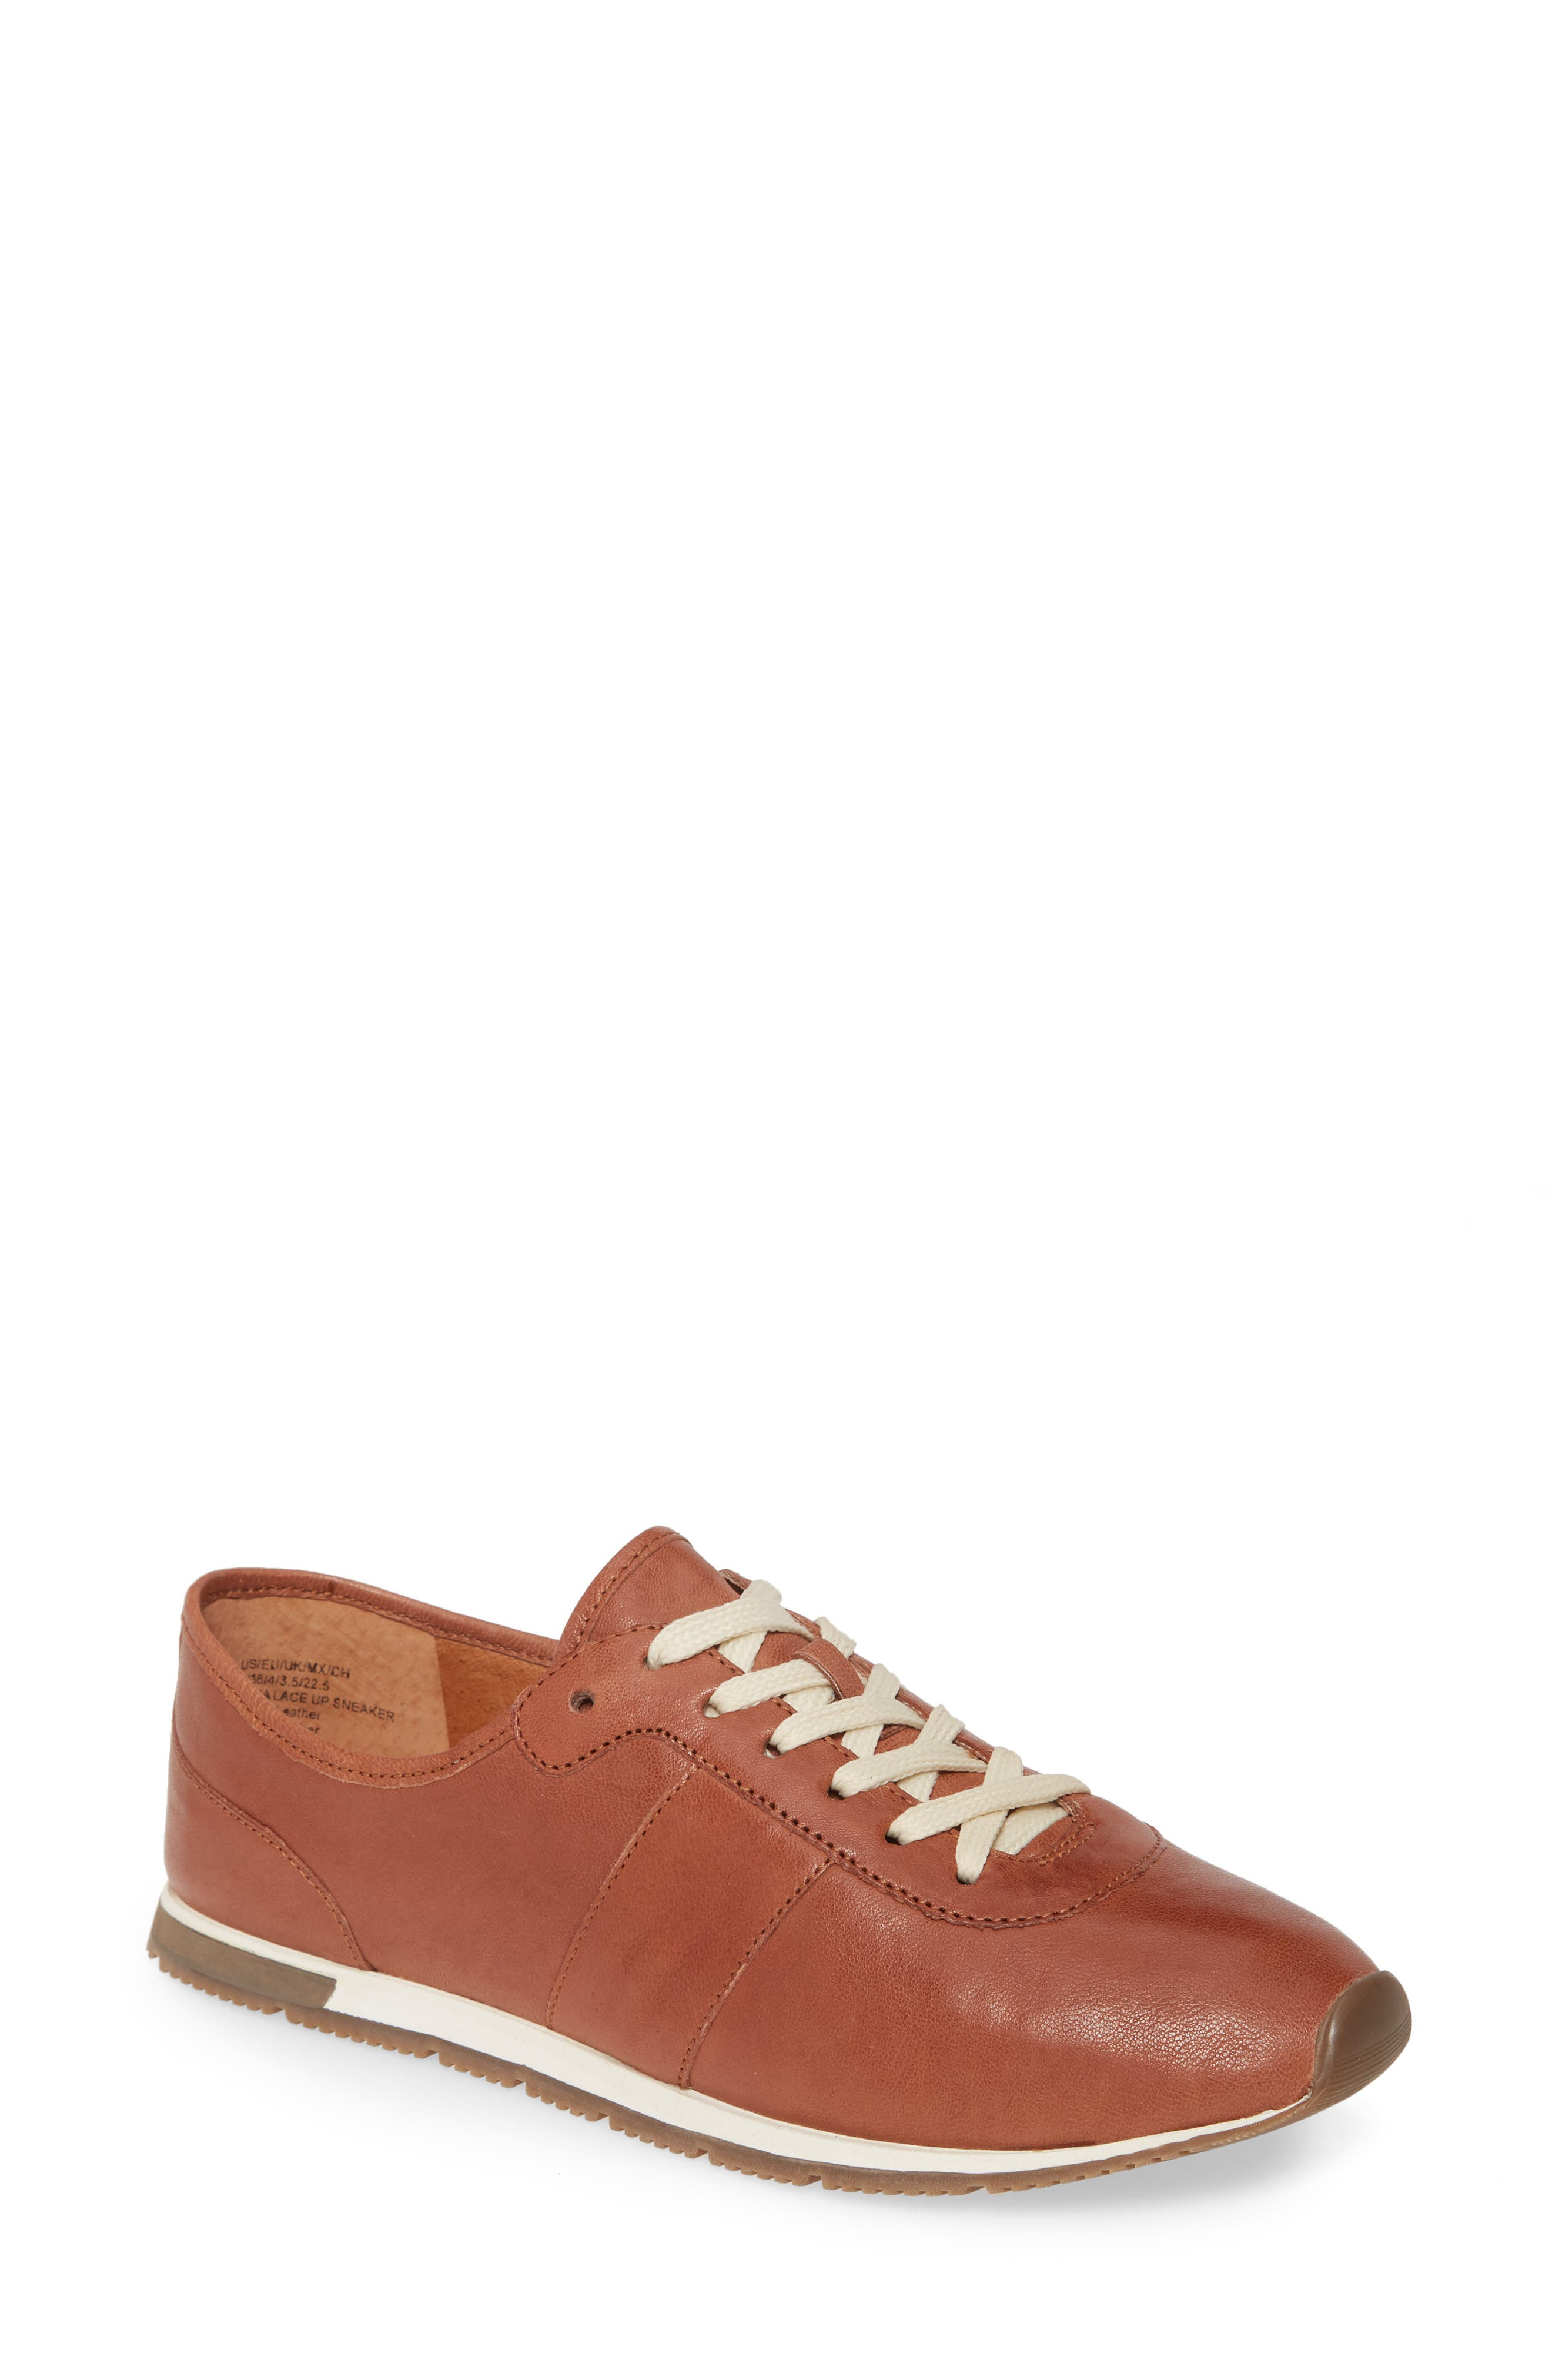 Gentle Souls By Kenneth Cole Luca Lace-Up Sneaker, Brown